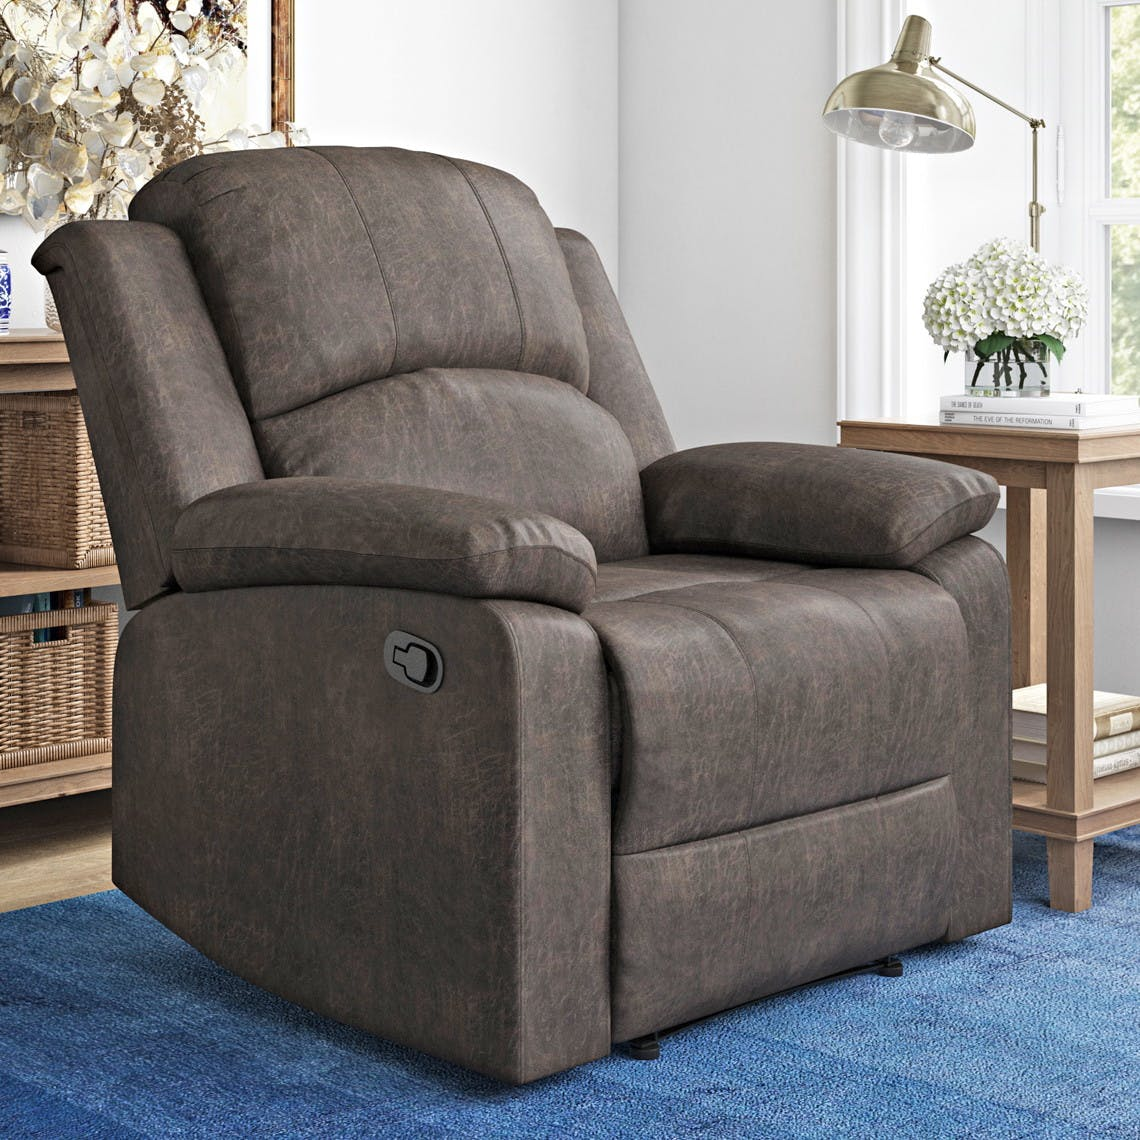 Manual Recliner Just 149 At Walmart The Krazy Coupon Lady